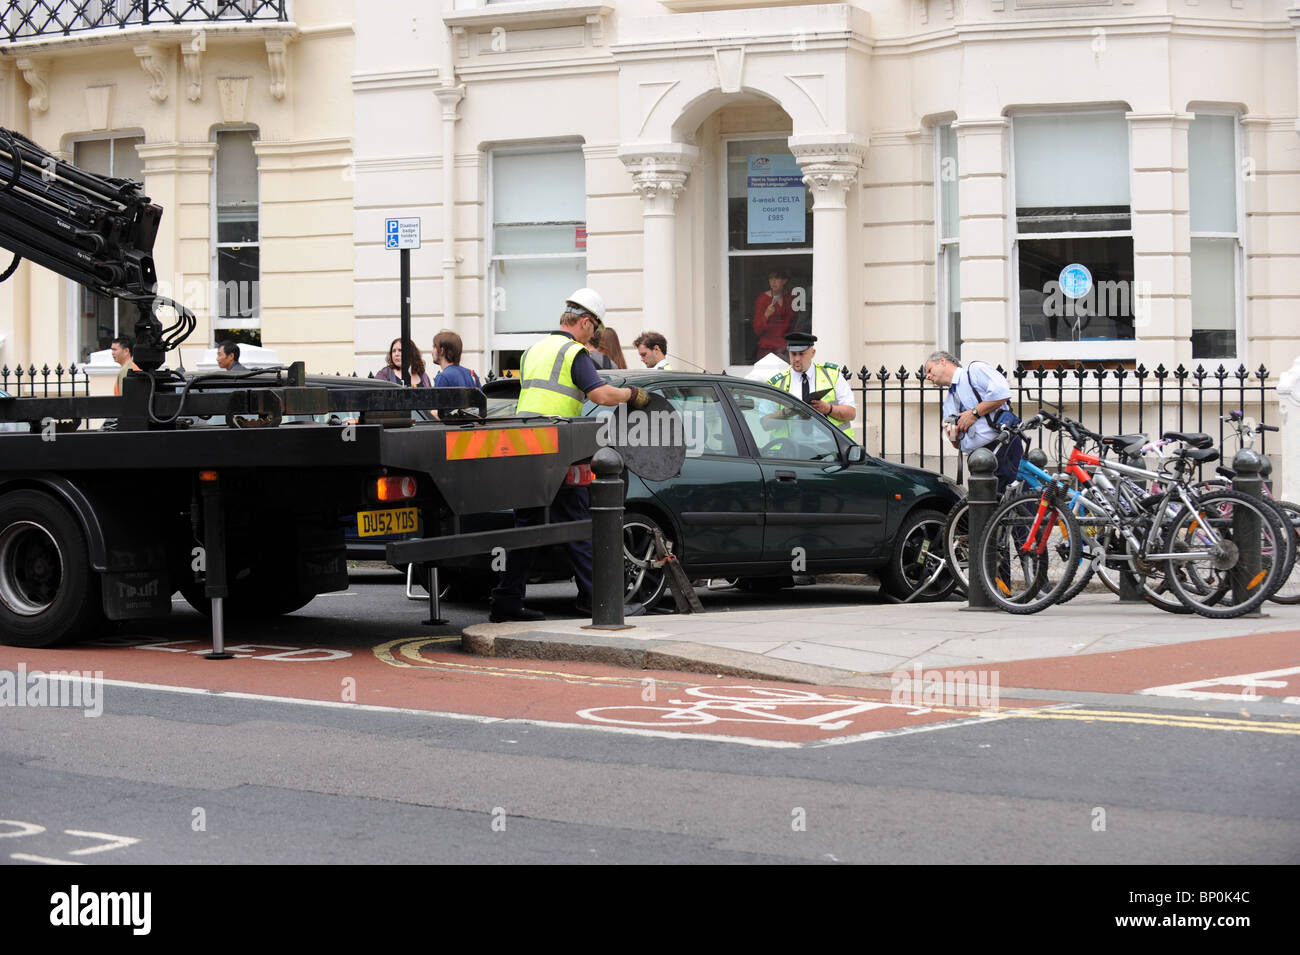 A Traffic warden supervises the removal of an illegally parked car from a disabled bay in Brighton - Stock Image